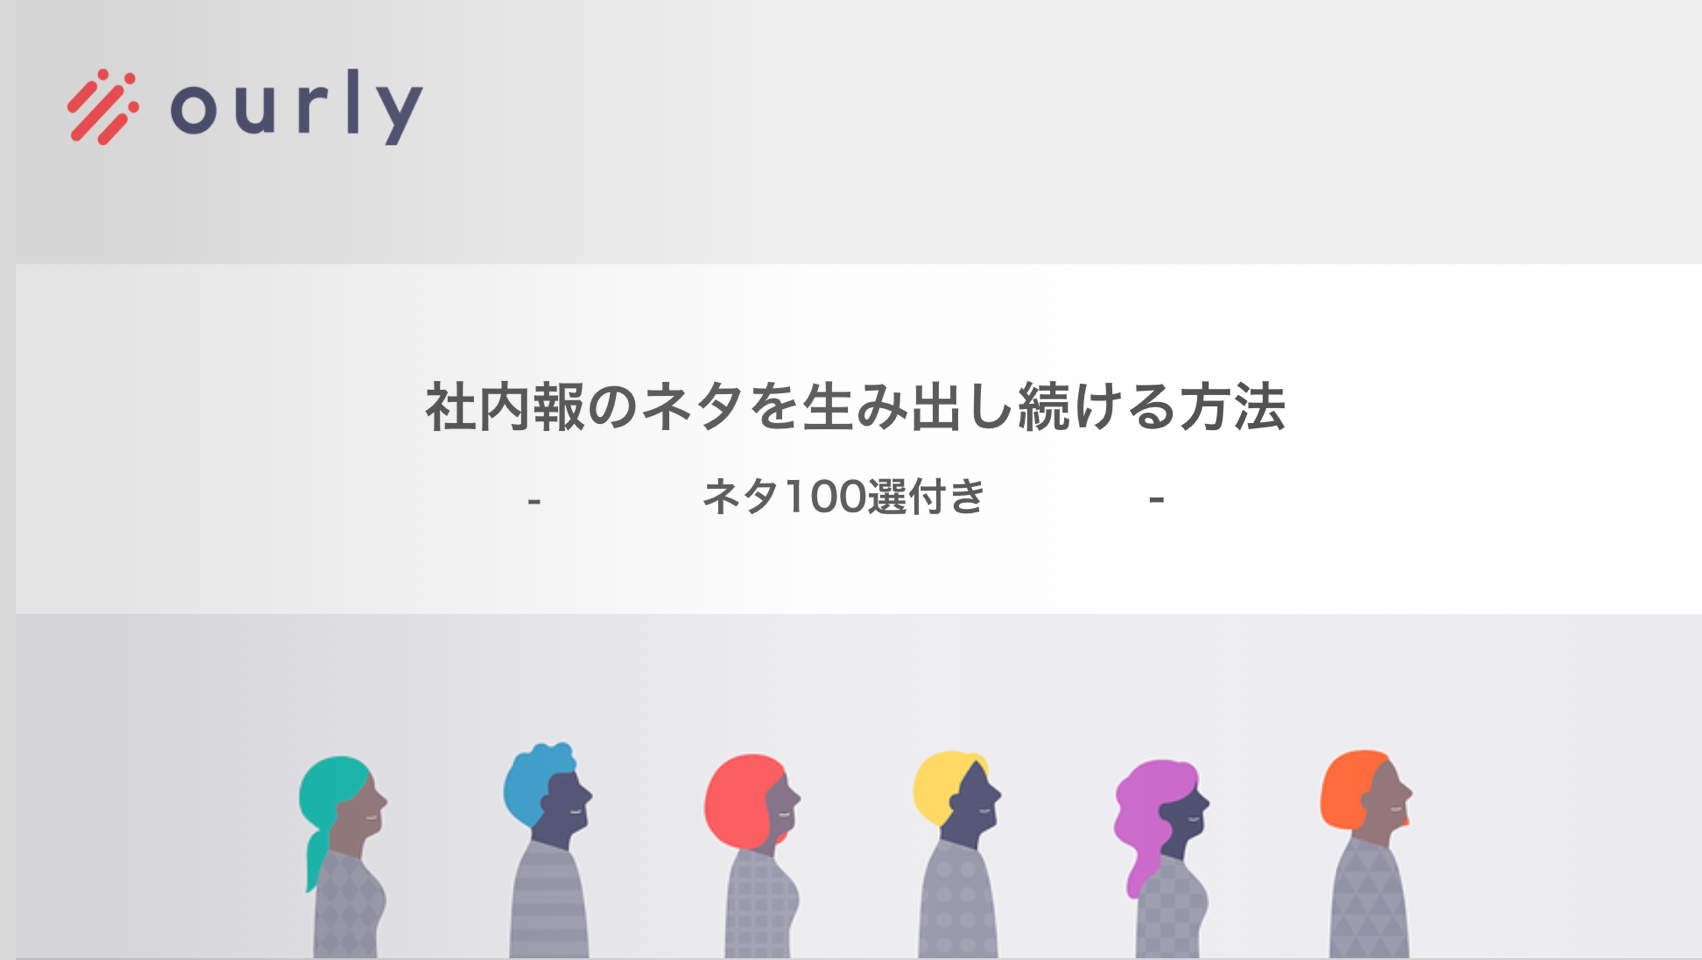 ourly バナー ネタ